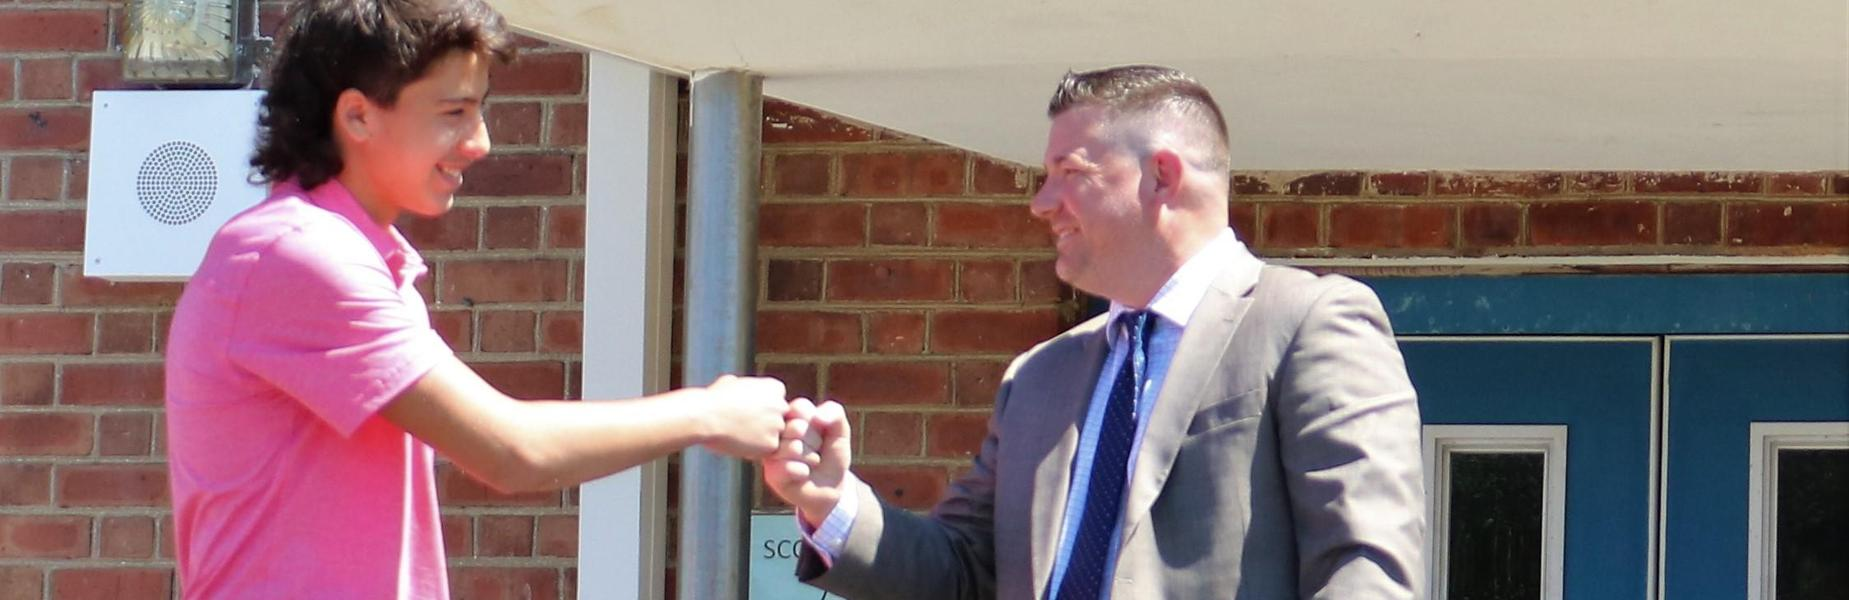 Photo of Edison principal Dr. Matthew Bolton fist bumping 8th grader during promotion ceremony.